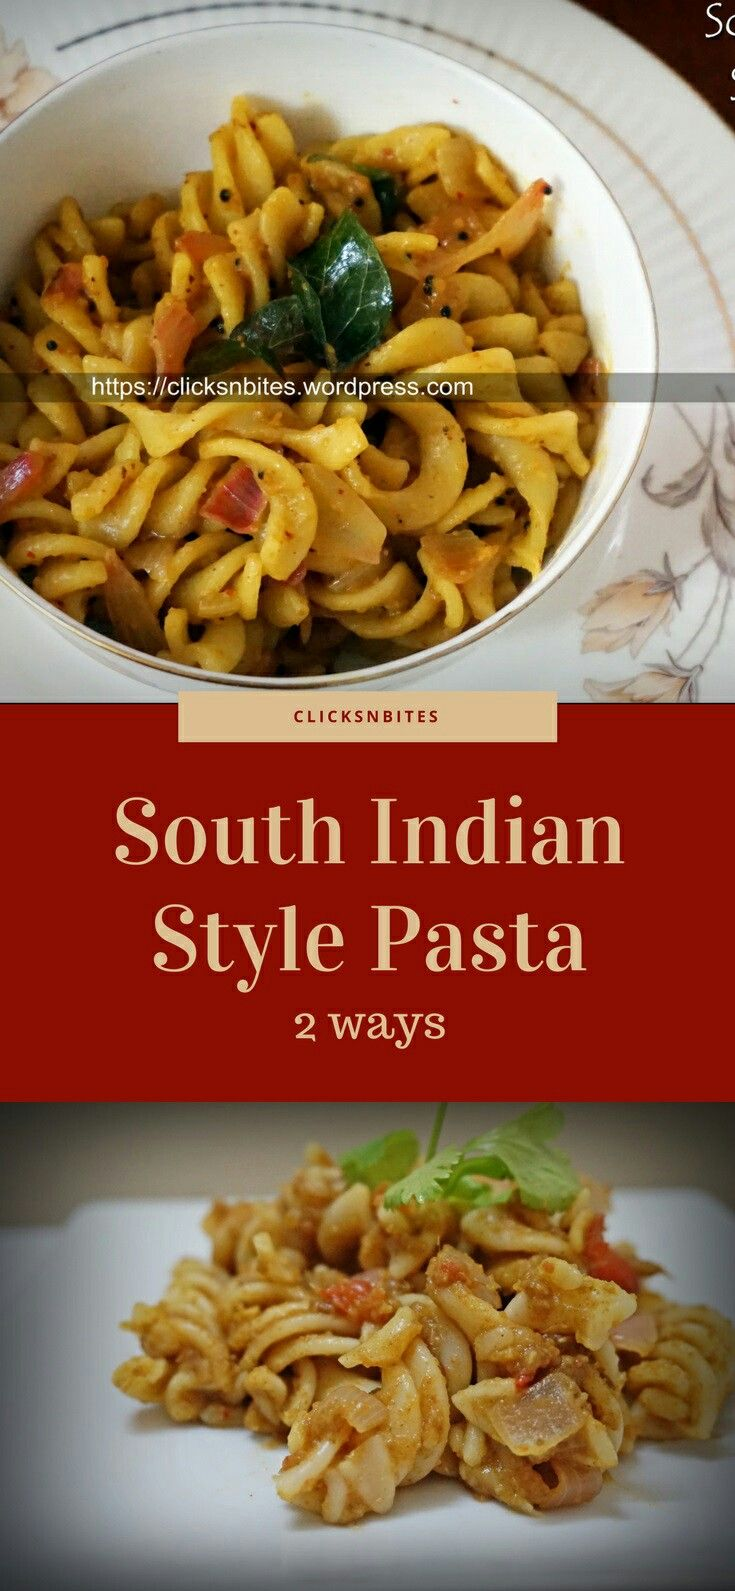 South indian style pasta varieties if you are bored of italian style south indian style pasta varieties if you are bored of italian style check these out forumfinder Image collections